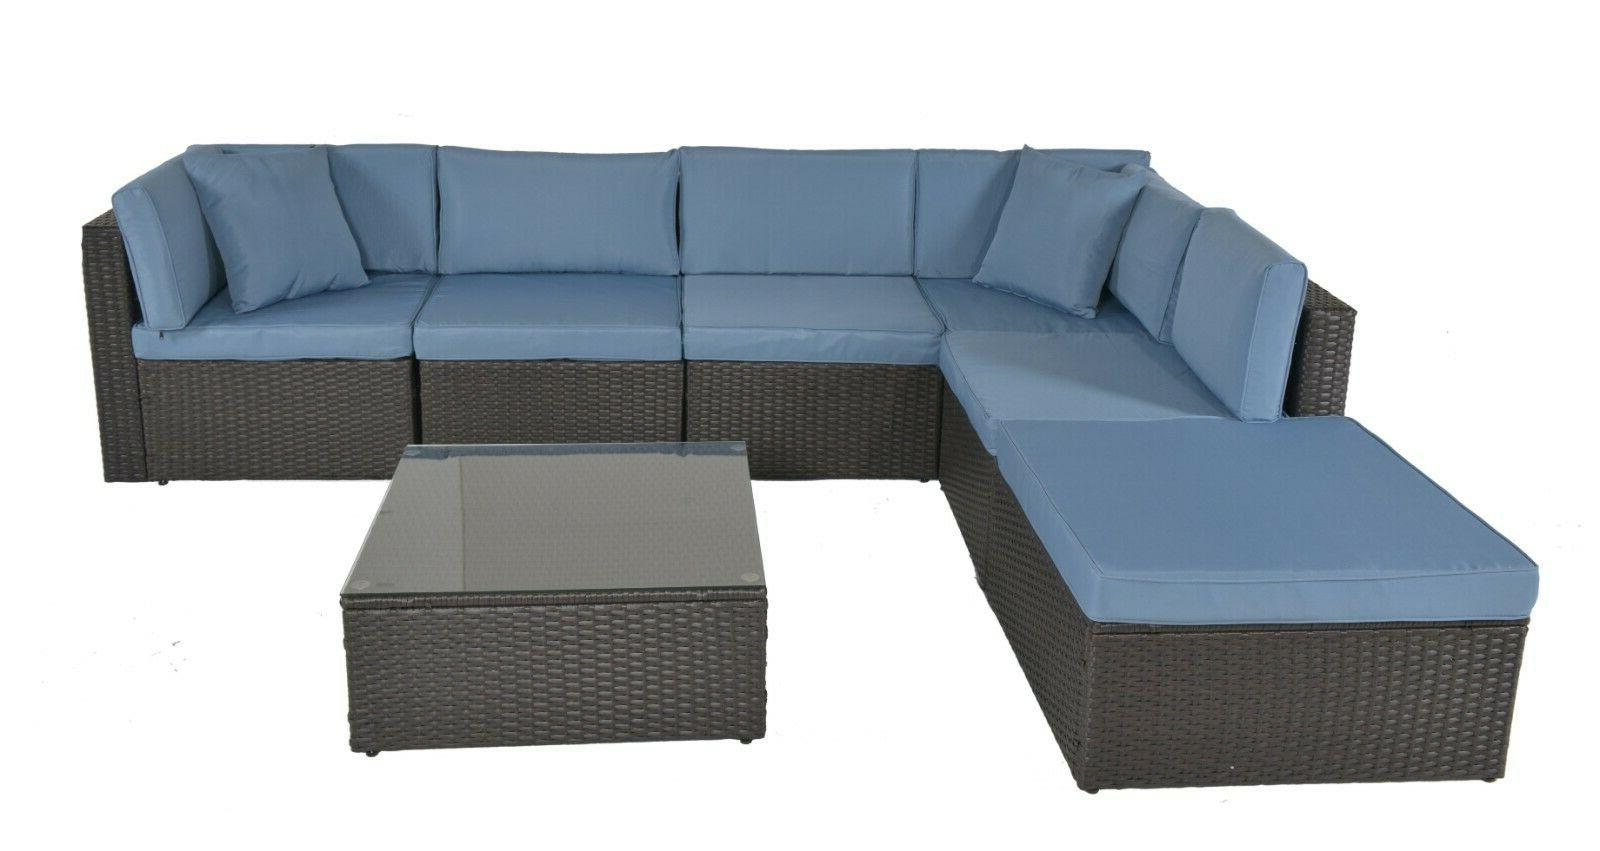 7pc patio wicker rattan sofa sectional set